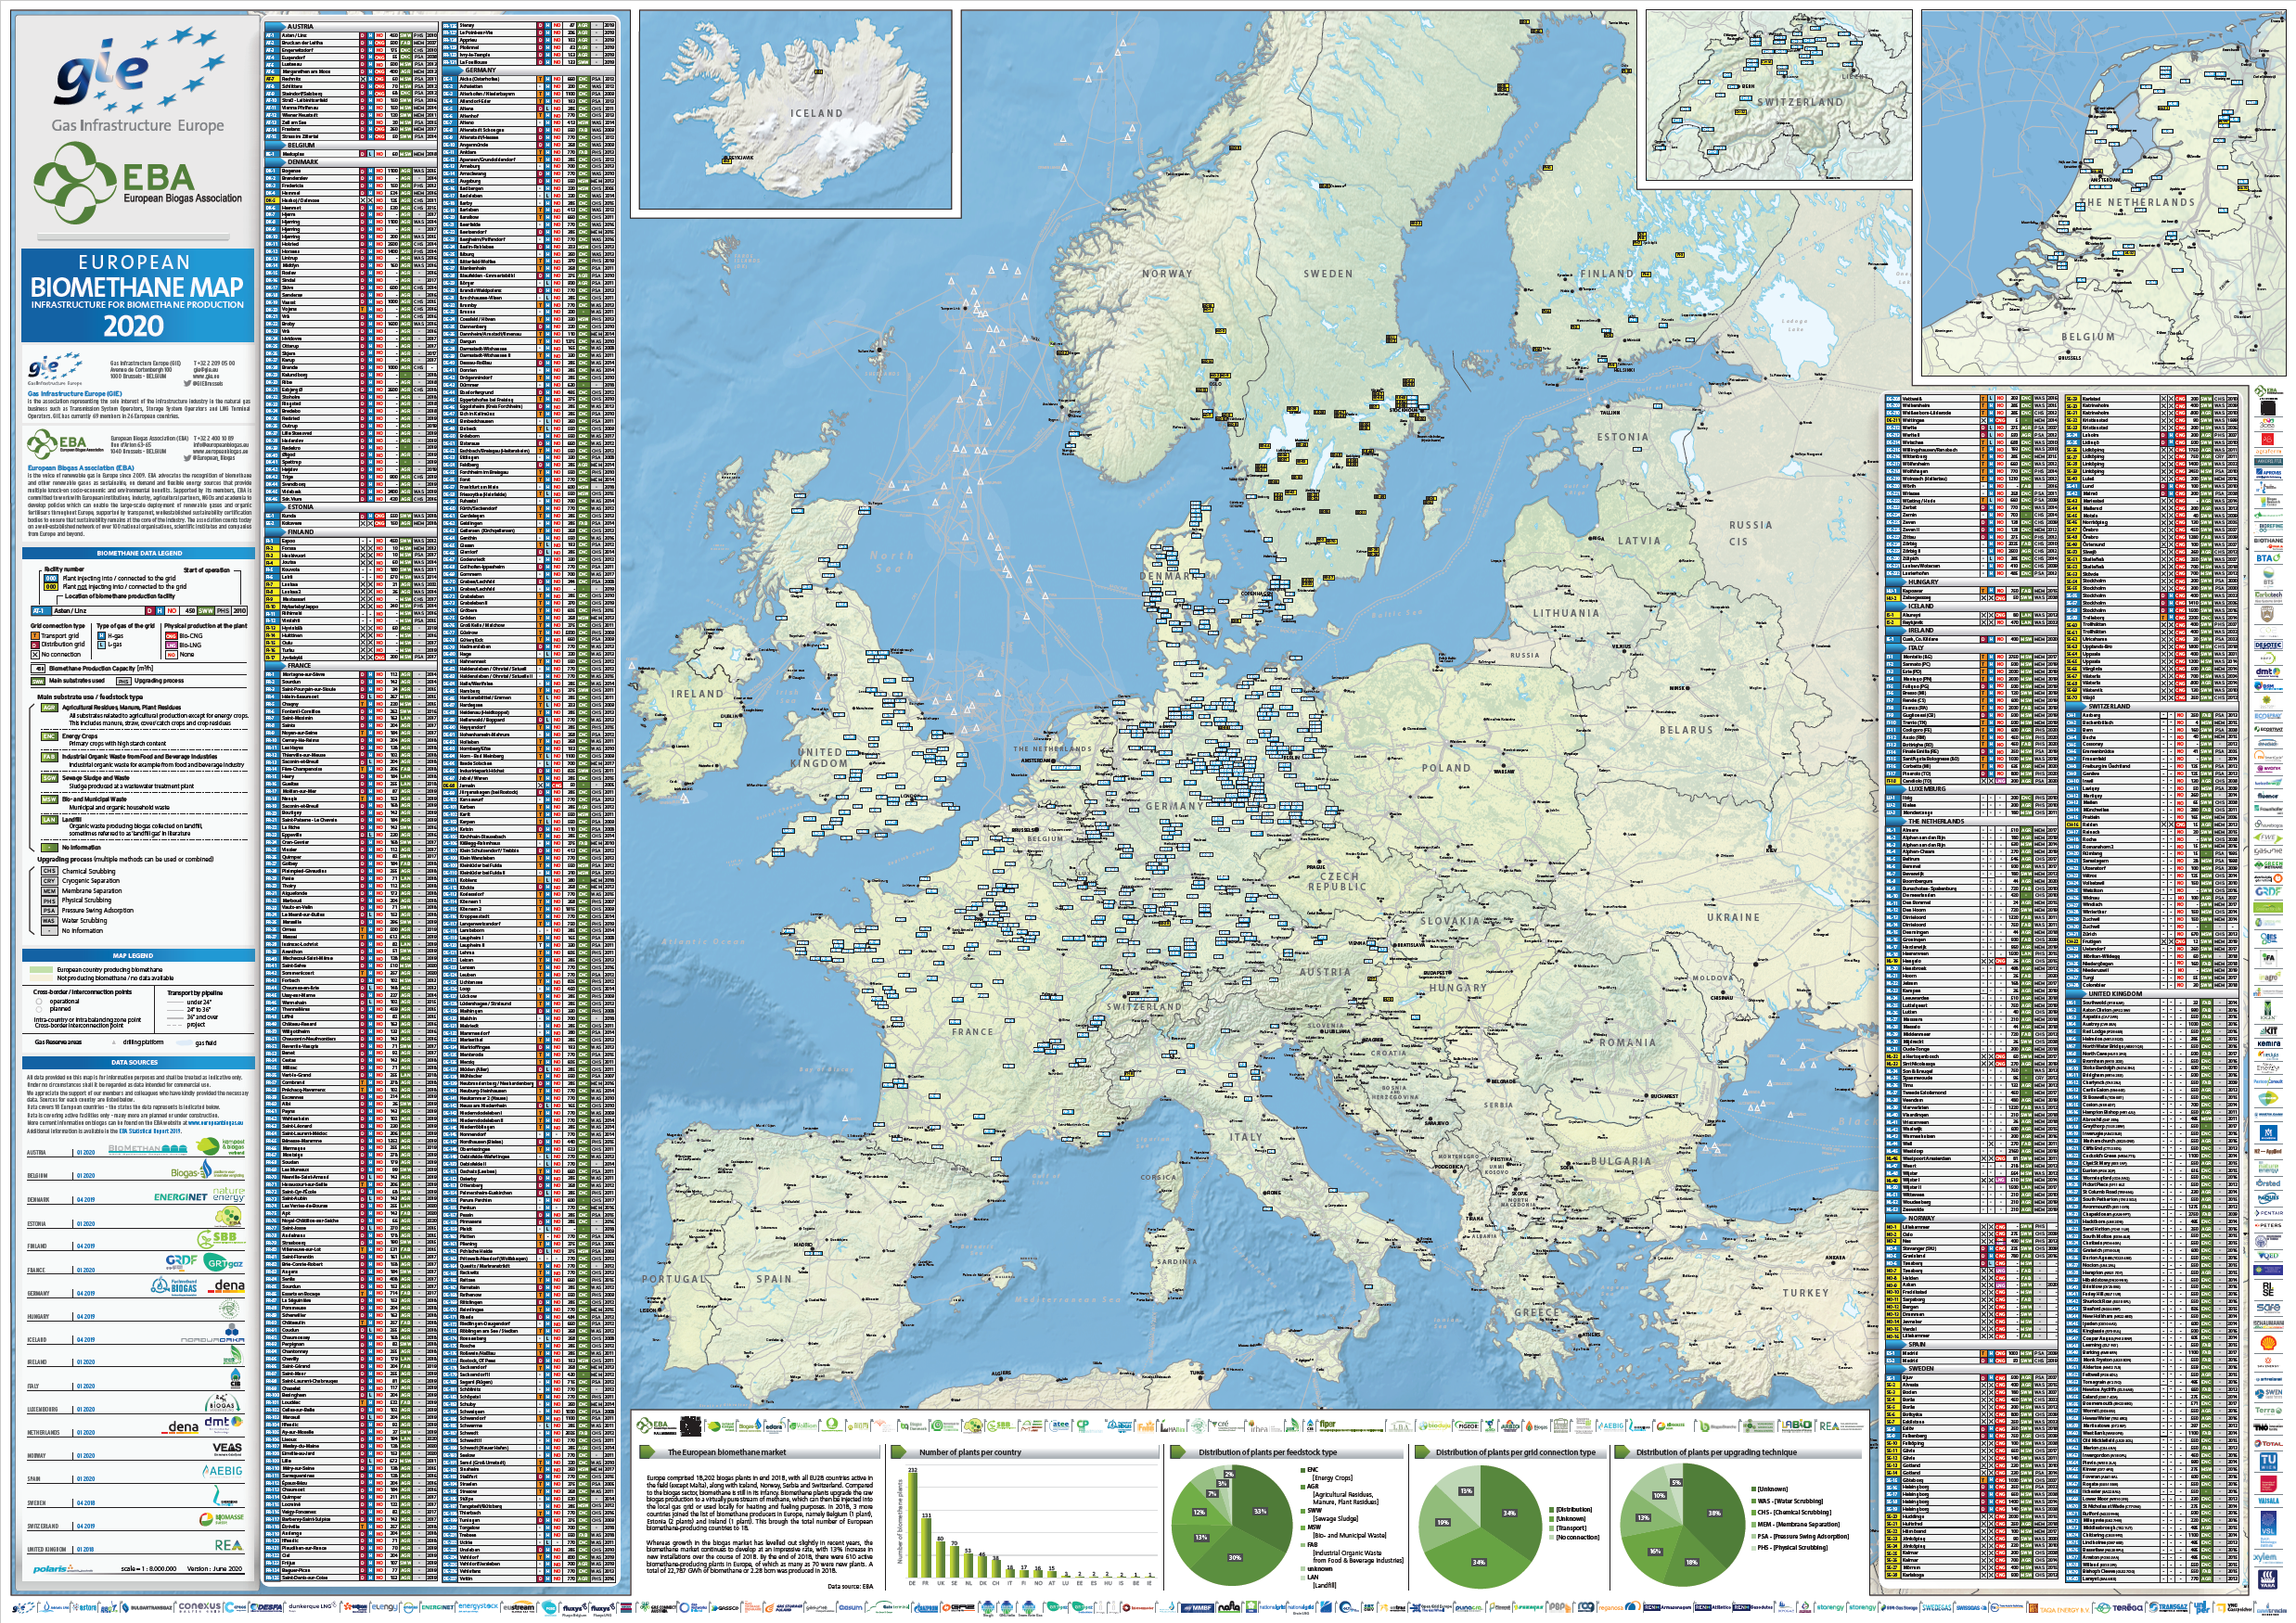 European Biomethane Map 2020. © GIE - EBA